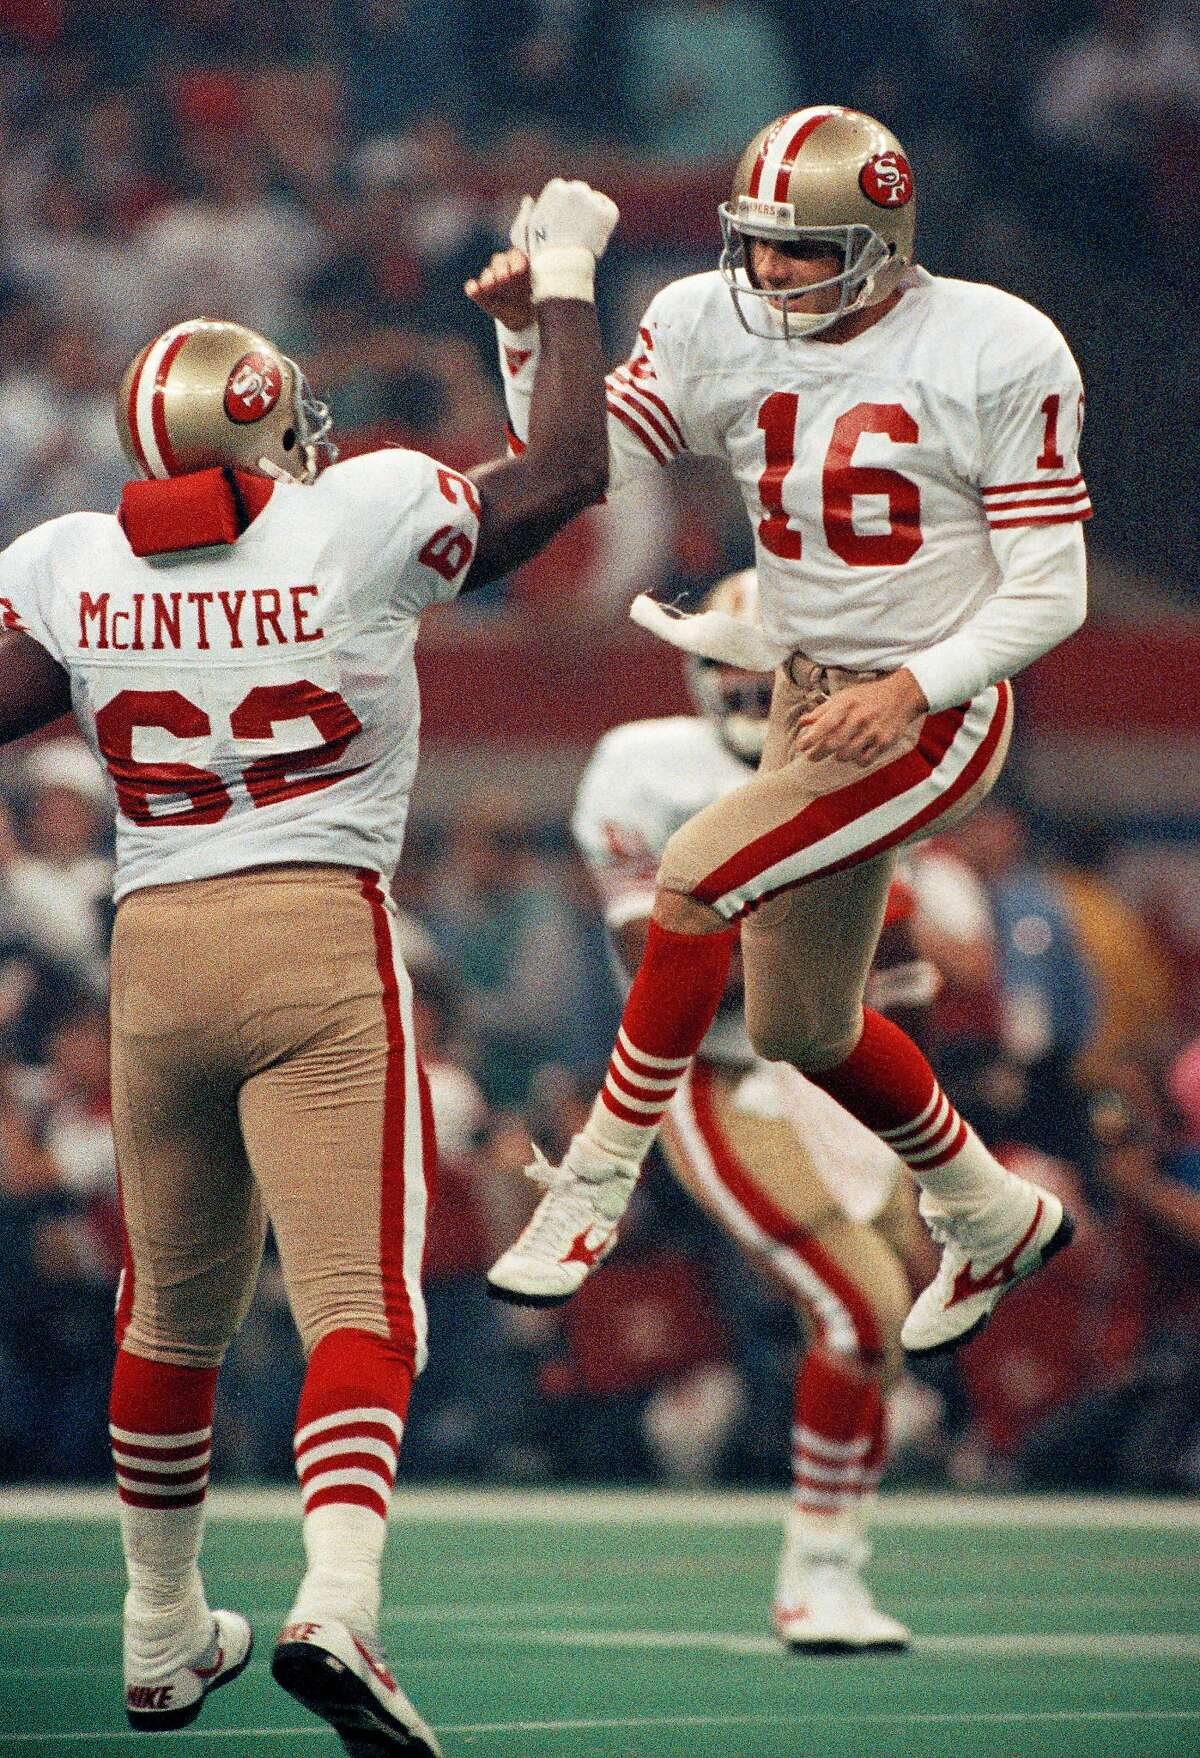 TEAMS 2. 1990 San Francisco, Super Bowl XXIV (17-2): Finished first in offense and third in defense, losing two games by a combined five points. In playoffs, beat Vikings 41-13, Rams 30-3 and Broncos 55-10 in Super Bowl, the largest margin ever.